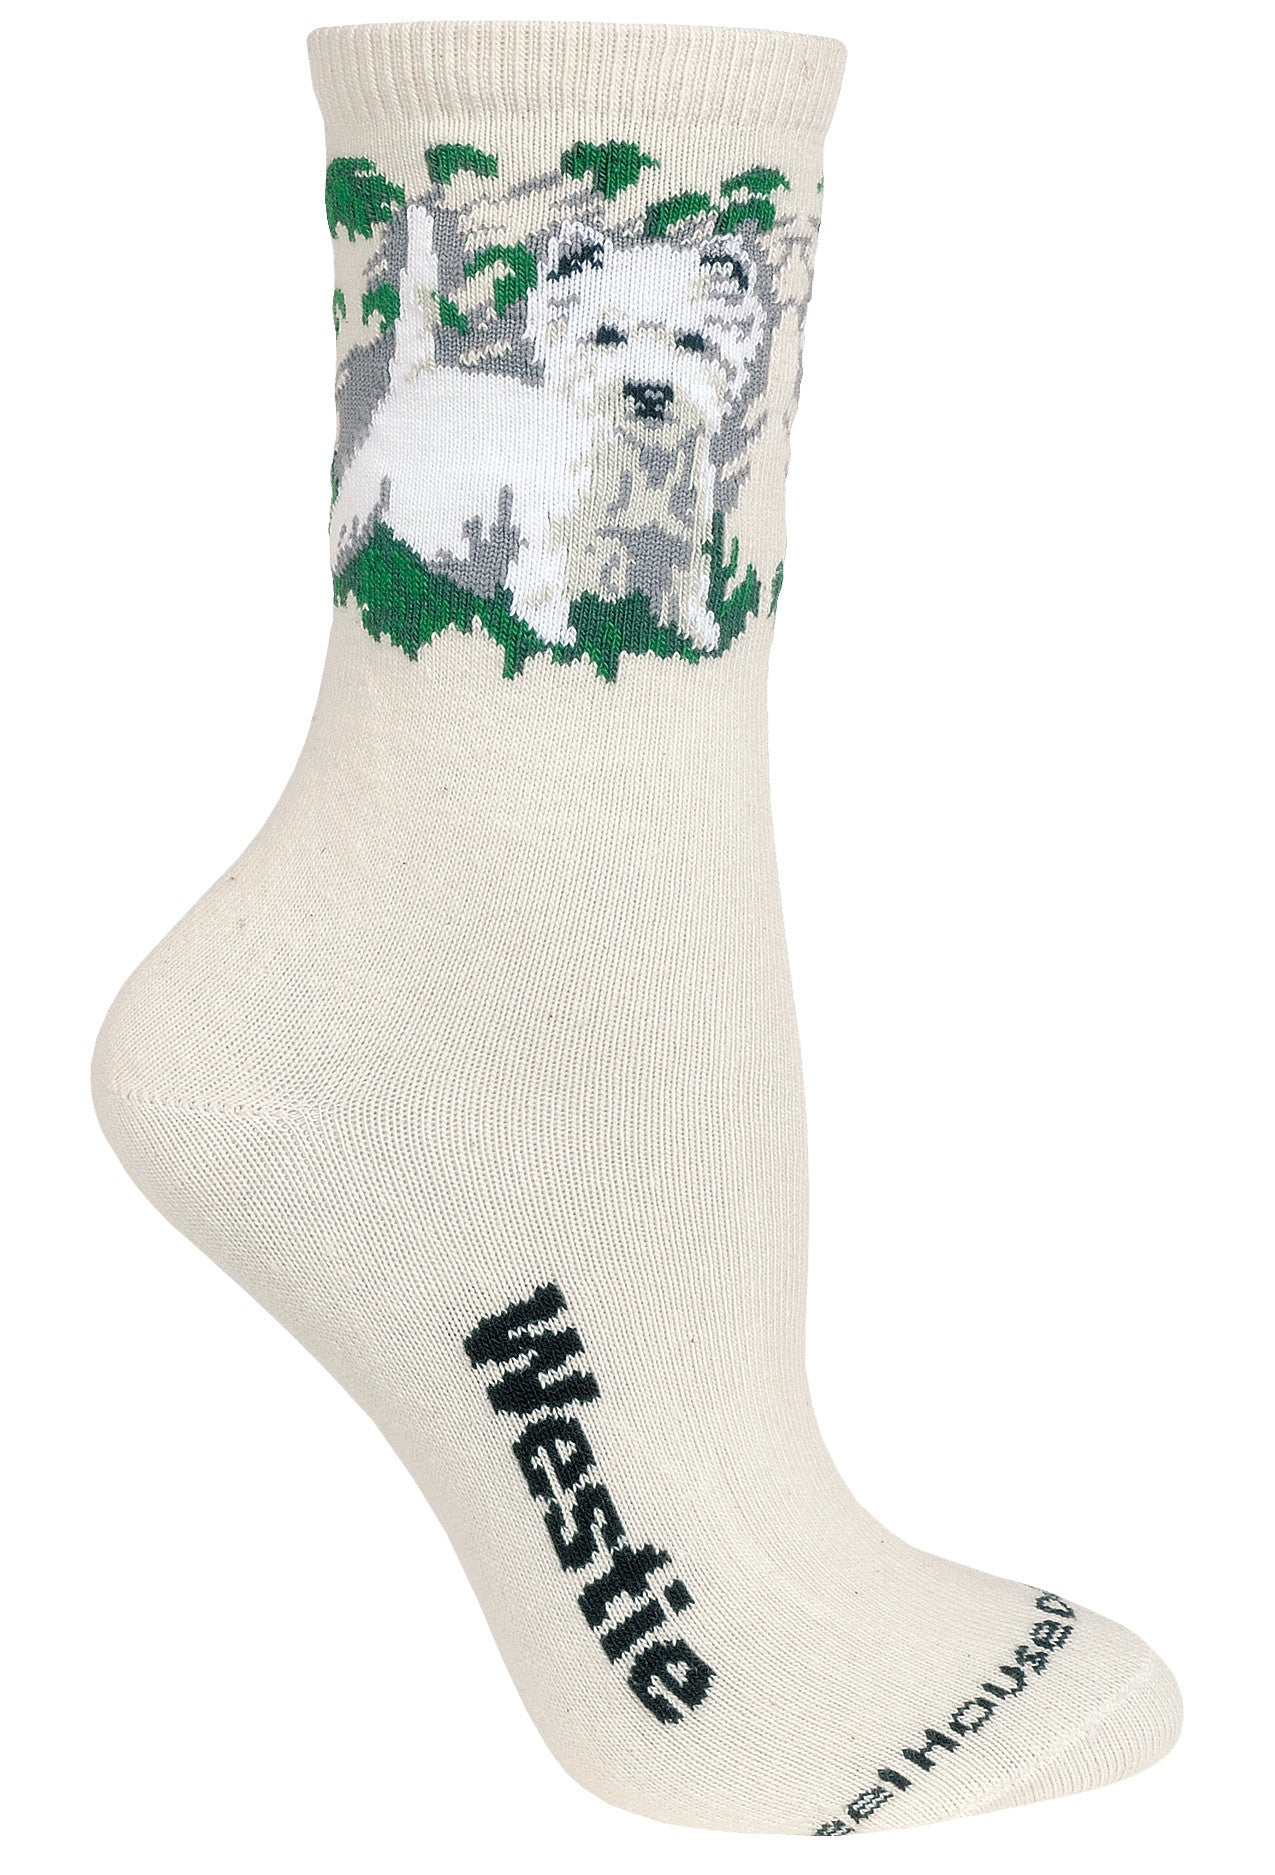 Westie on Natural Socks